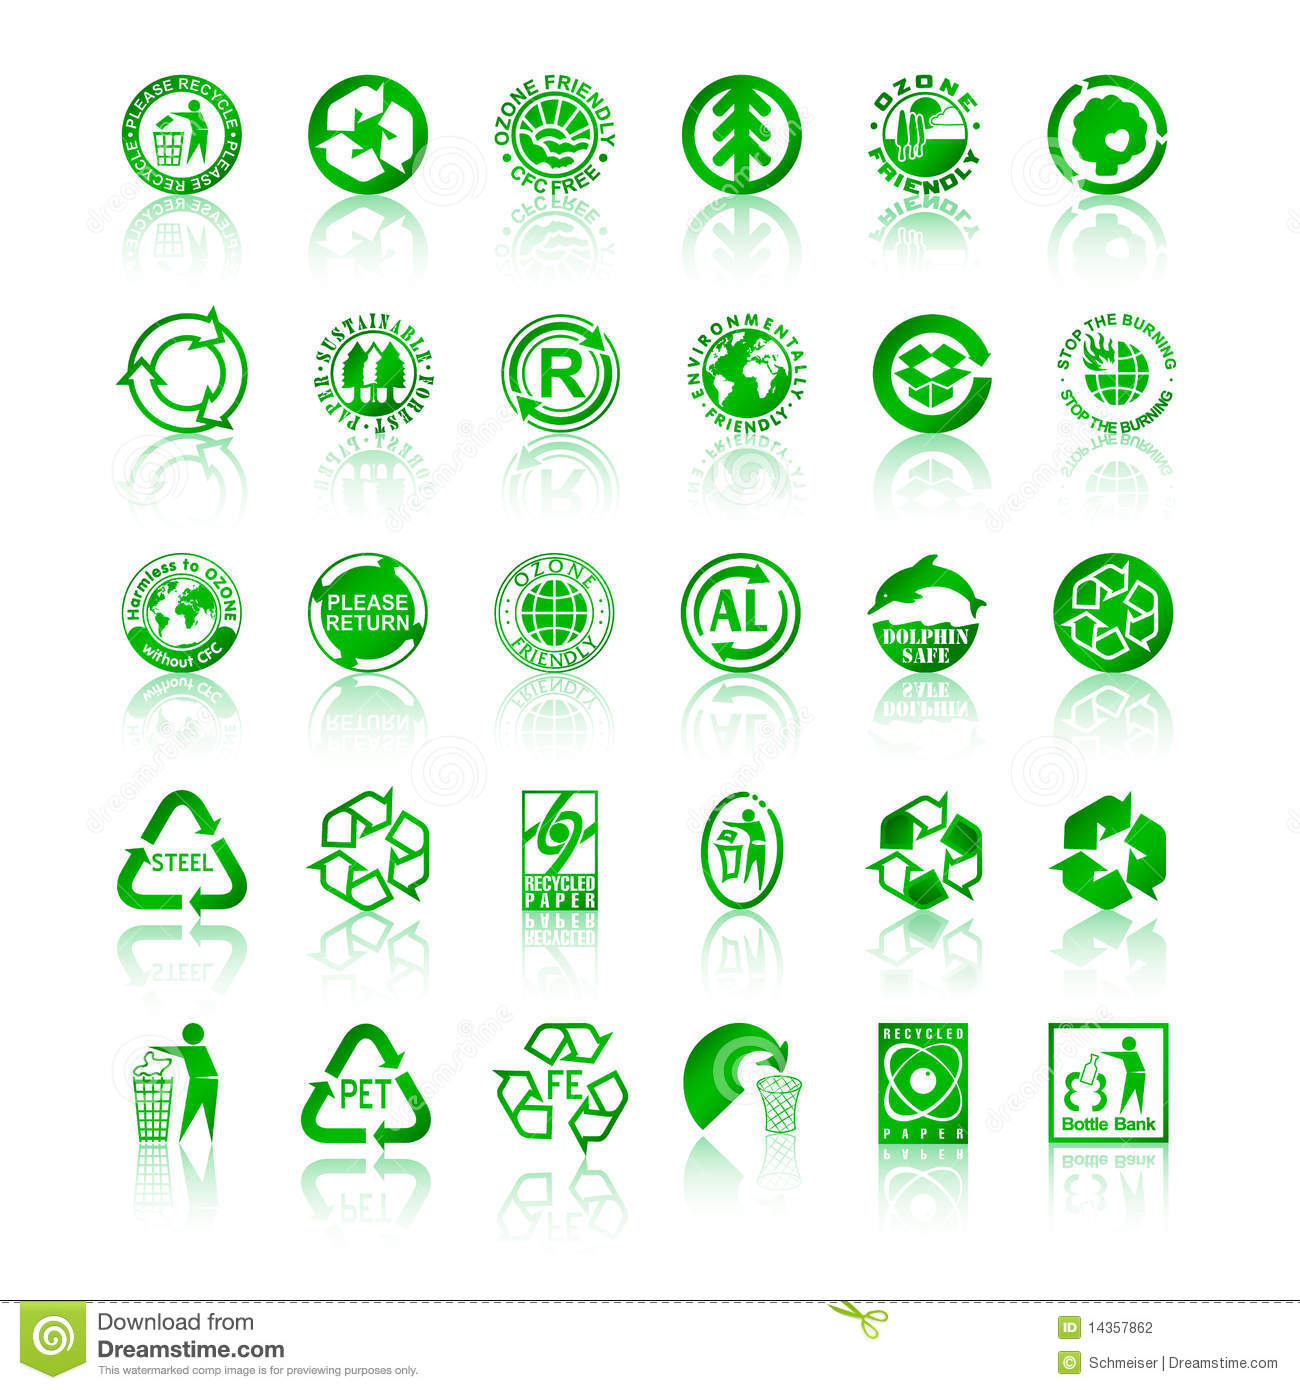 Recycle symbols with glossy reflections isolated on white background